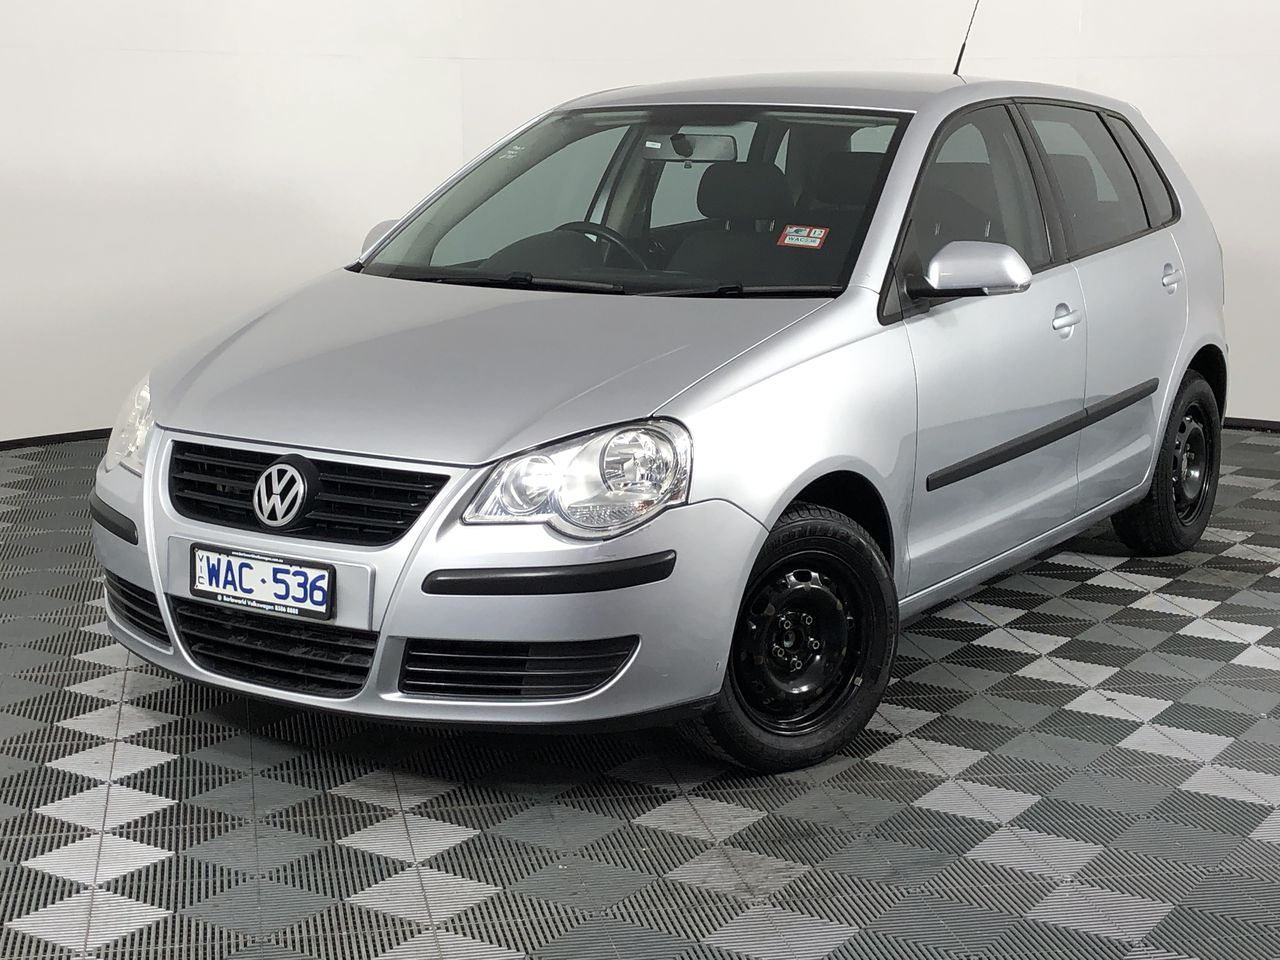 2007 Volkswagen Polo Match 9N Manual Hatchback RWC Issued 08/08/2019